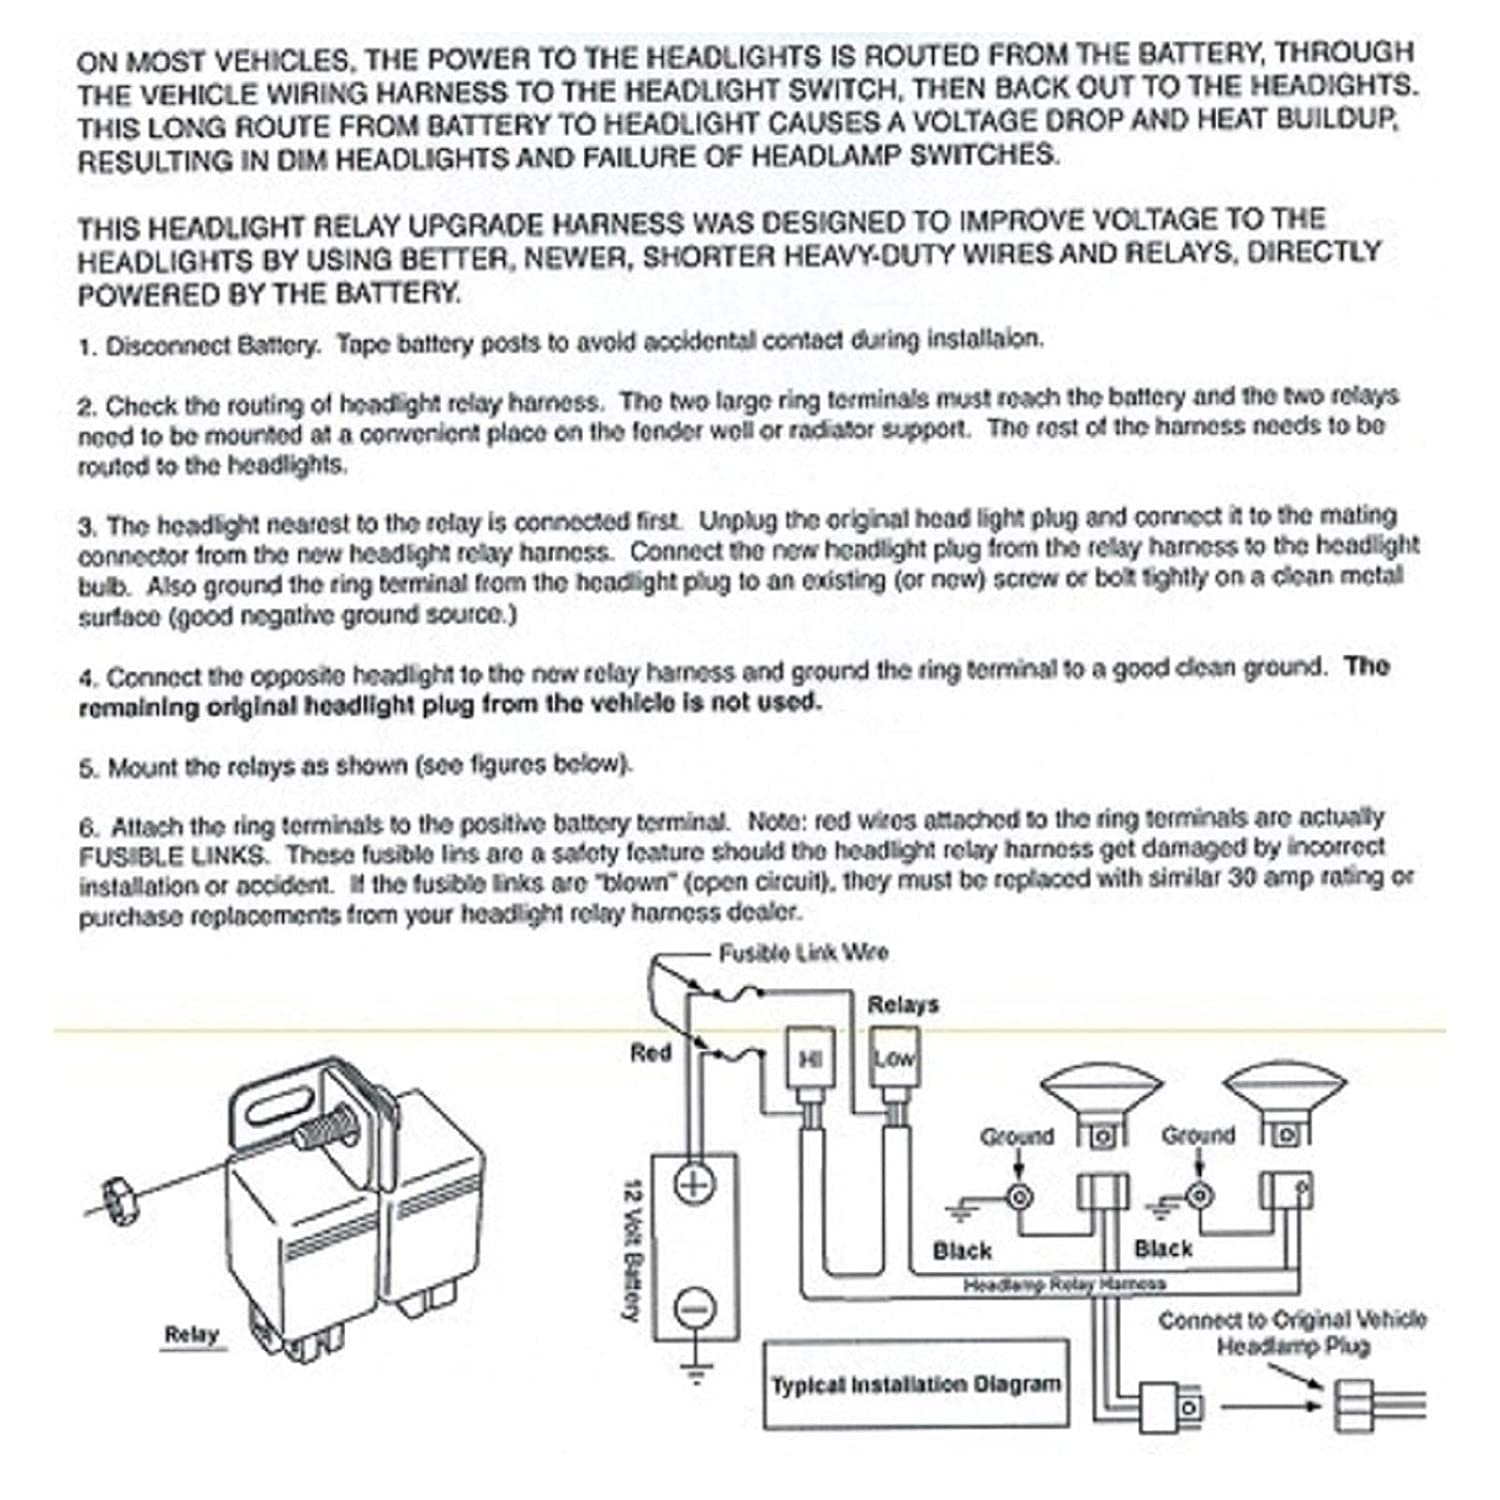 H4 Headlight Wiring Diagram from images-na.ssl-images-amazon.com